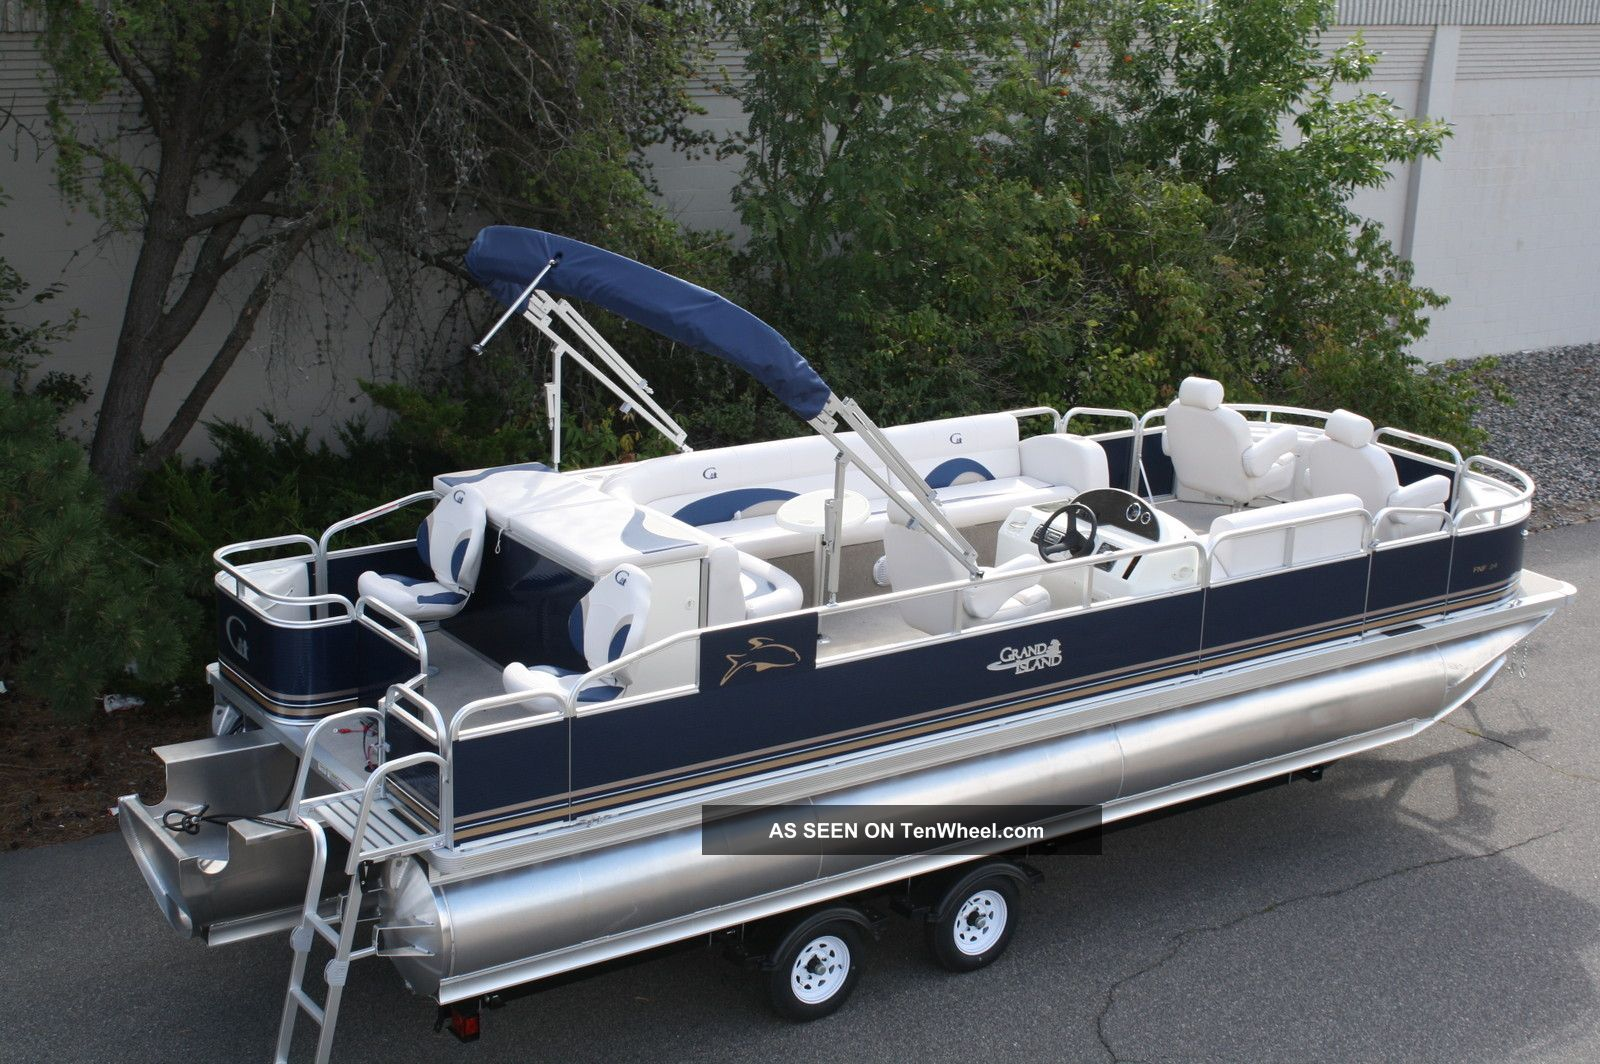 Images of Tahoe Boats Deck